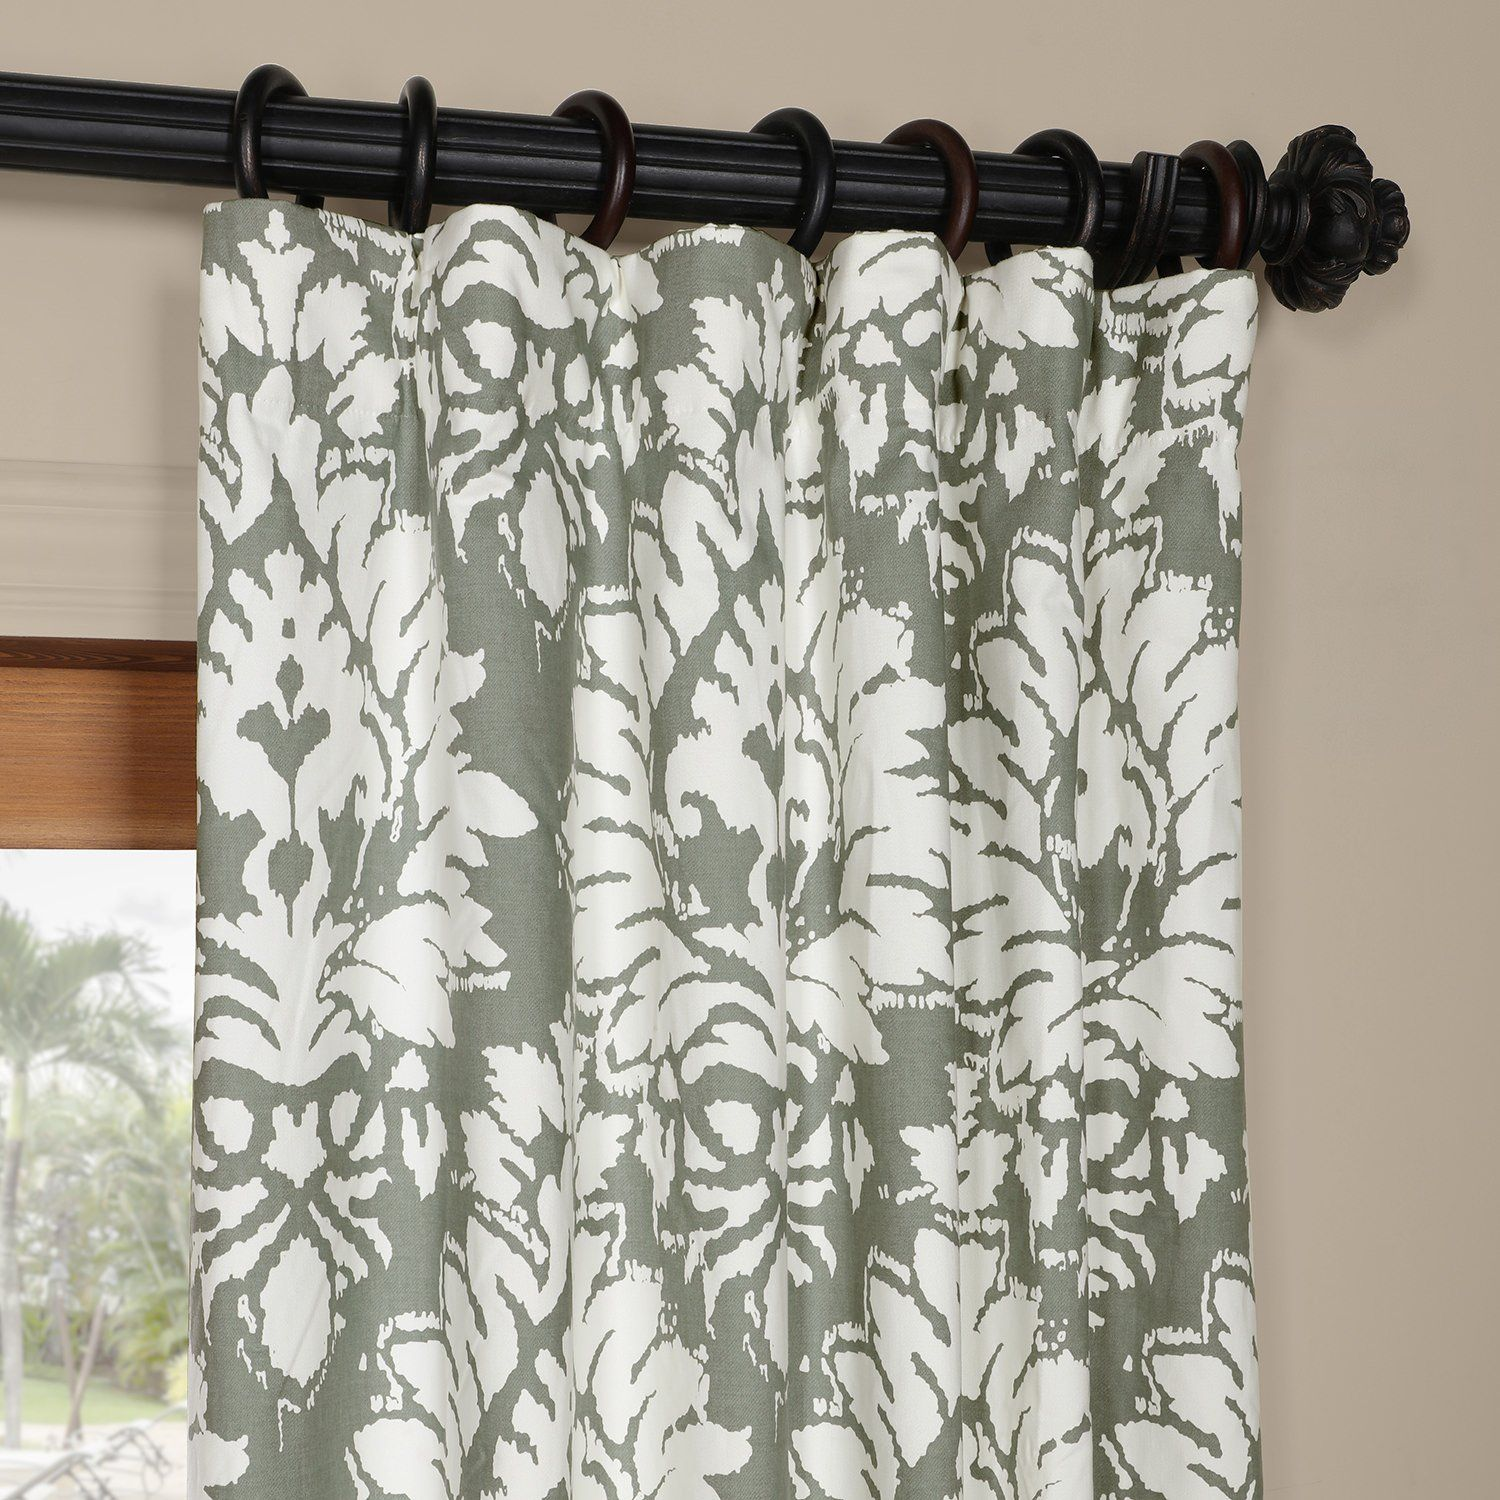 Flat Panel Drapery With White Floral Medallion On Gray Cotton